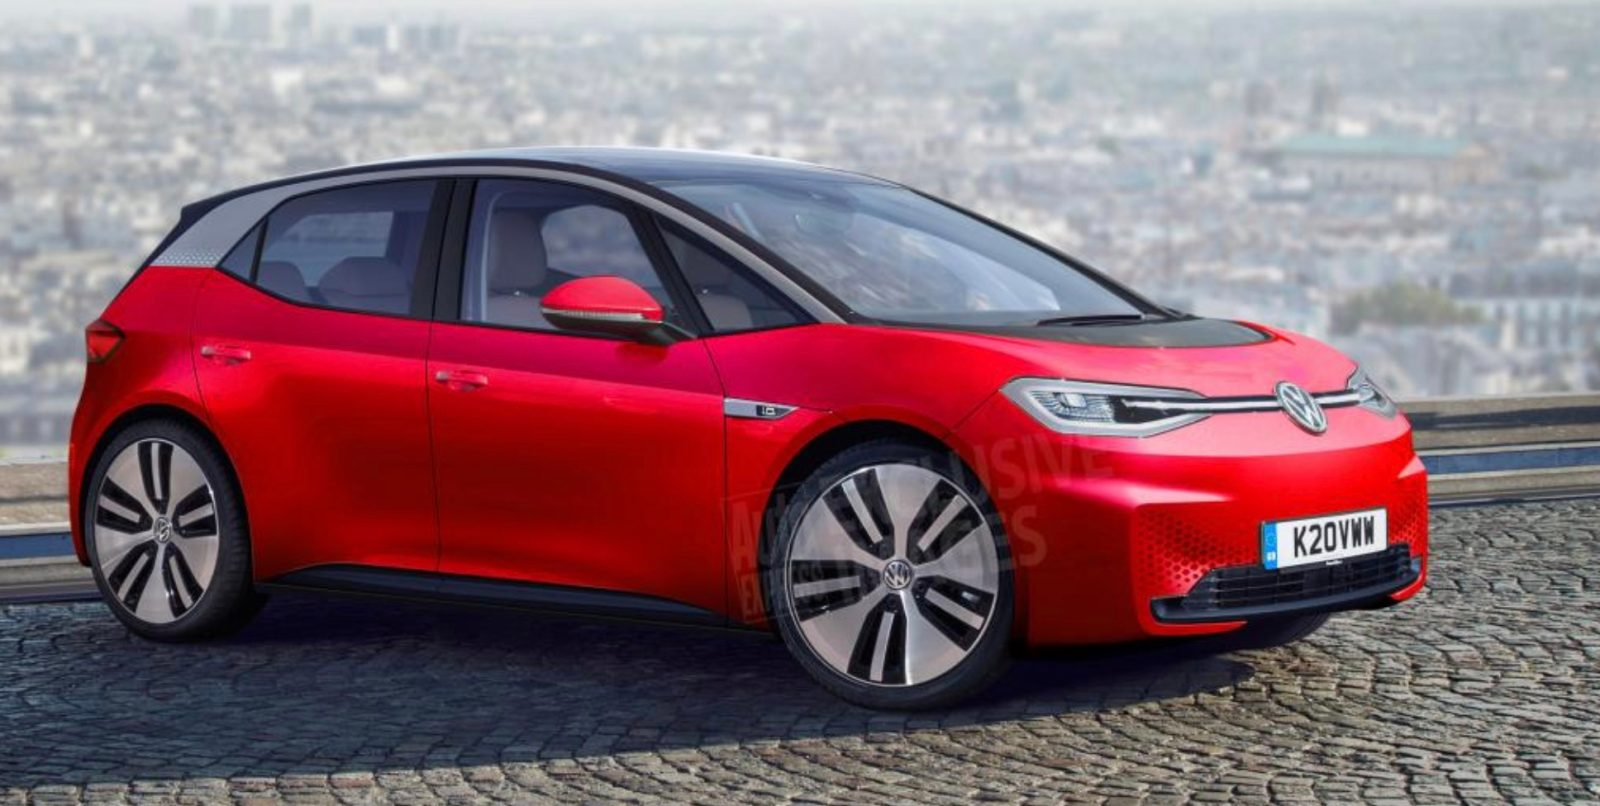 Vw S Affordable Electric Car To Be Offered In 3 Battery Configurations Starting At 30 000 Report Says